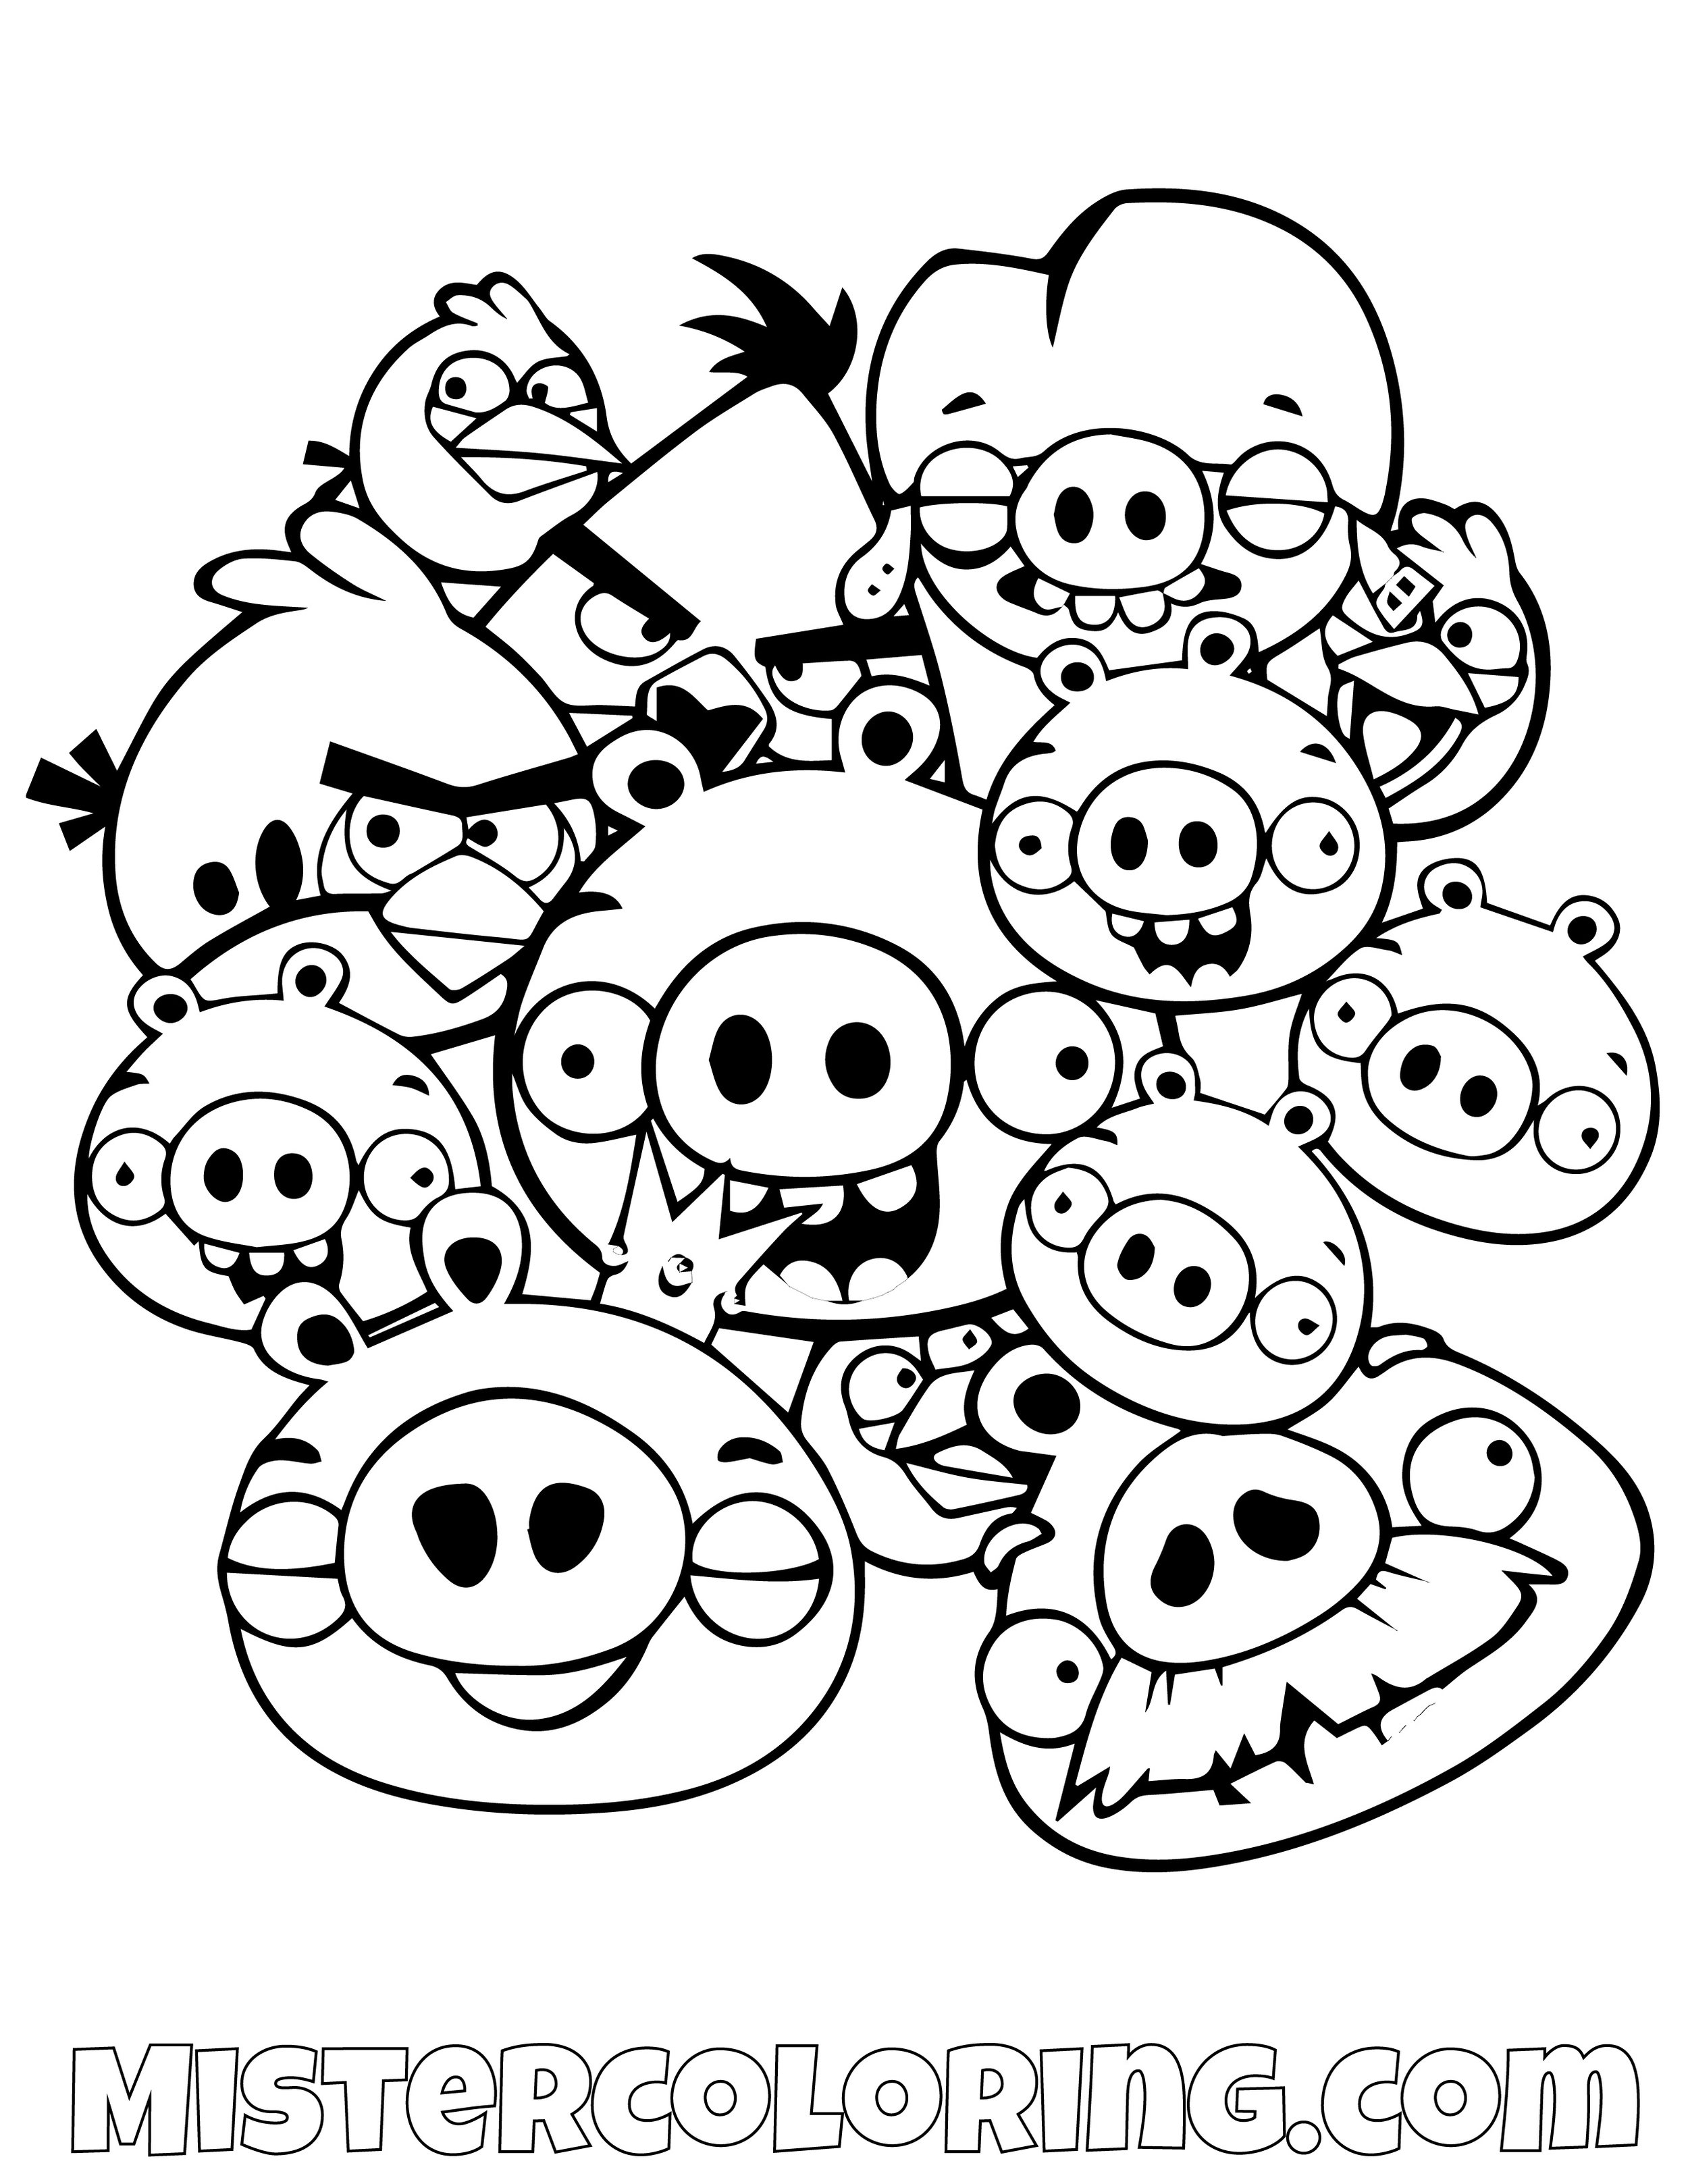 All Angry Birds Characters Coloring Pages